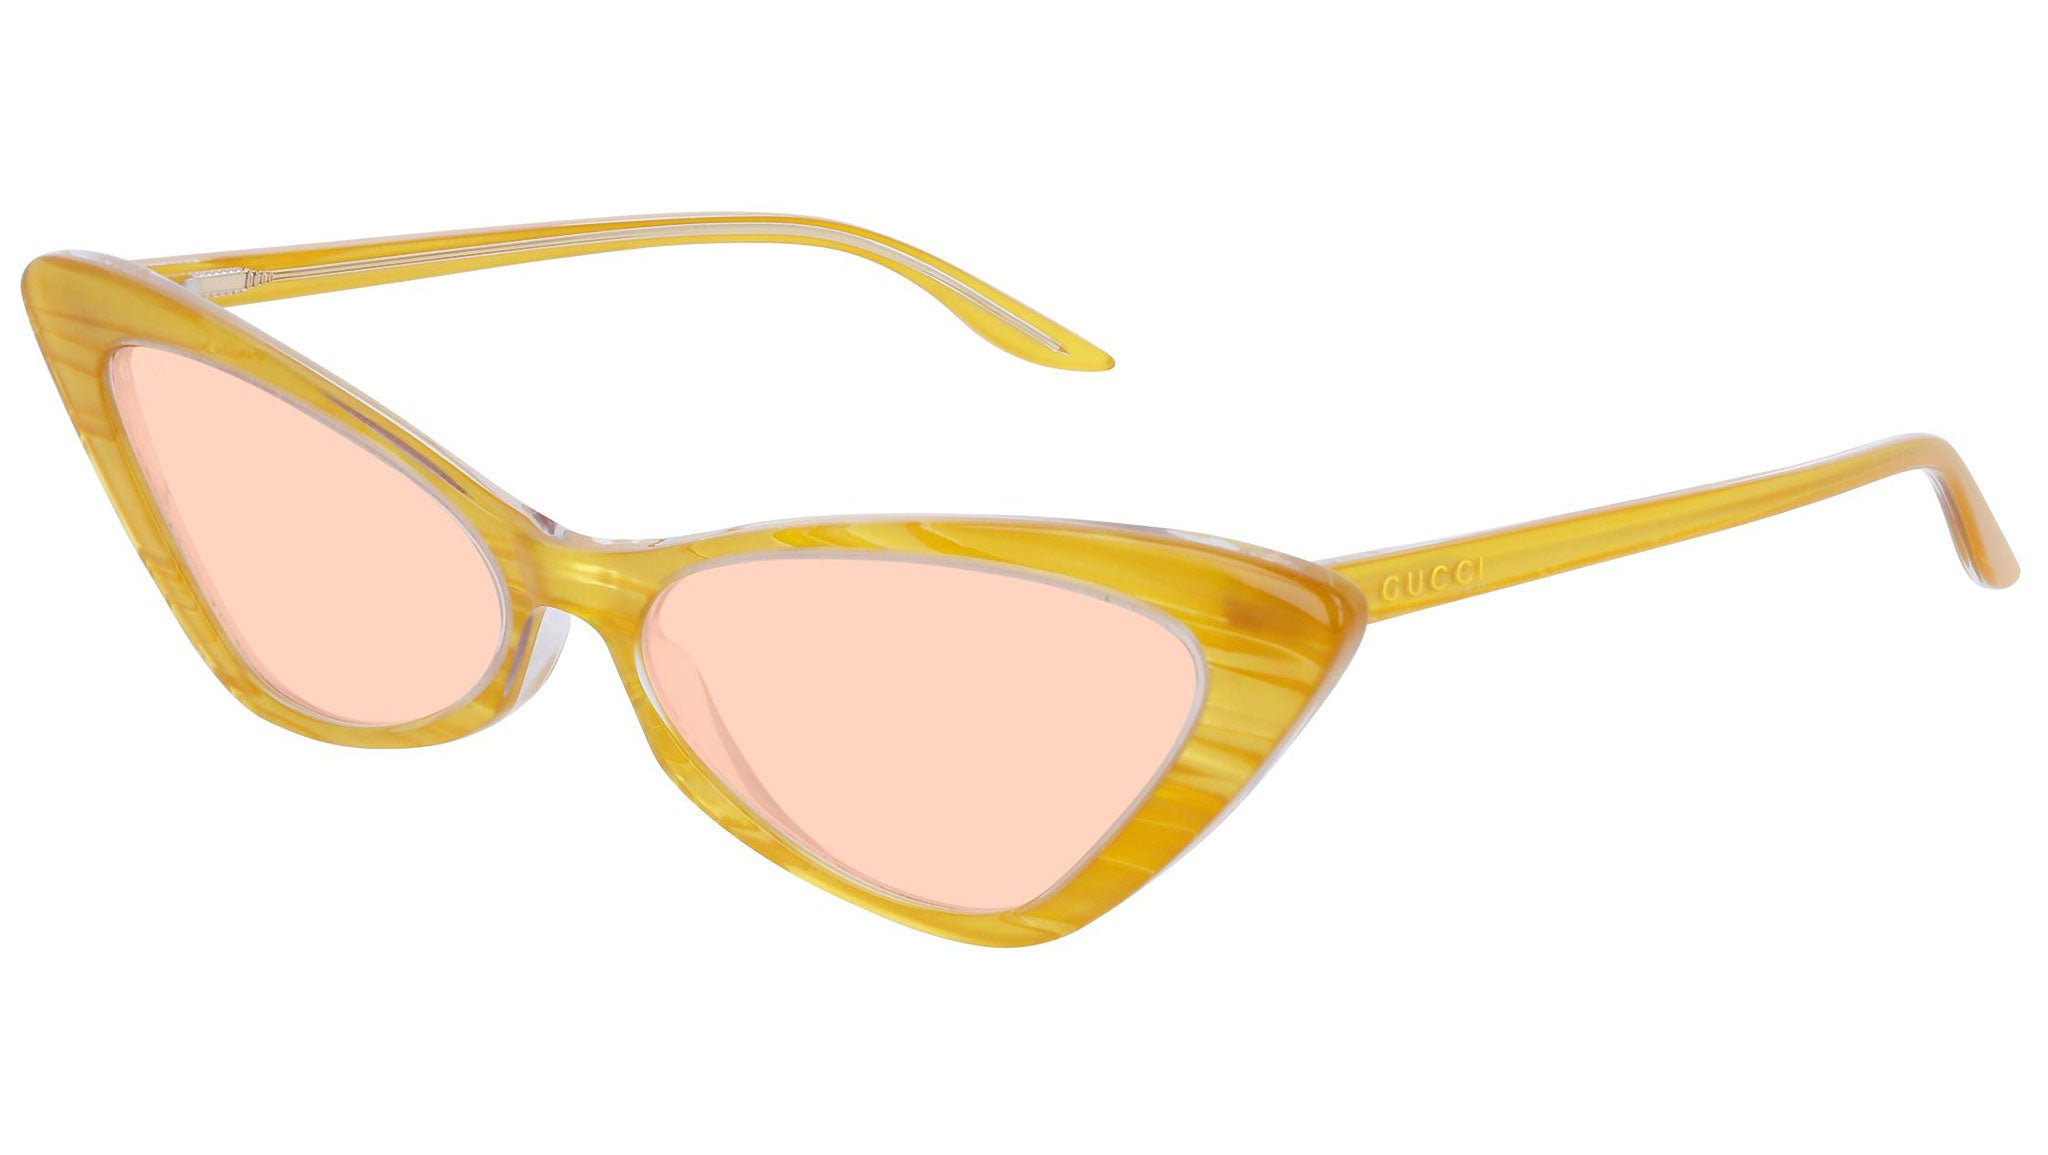 GG0708S crystal yellow and pink